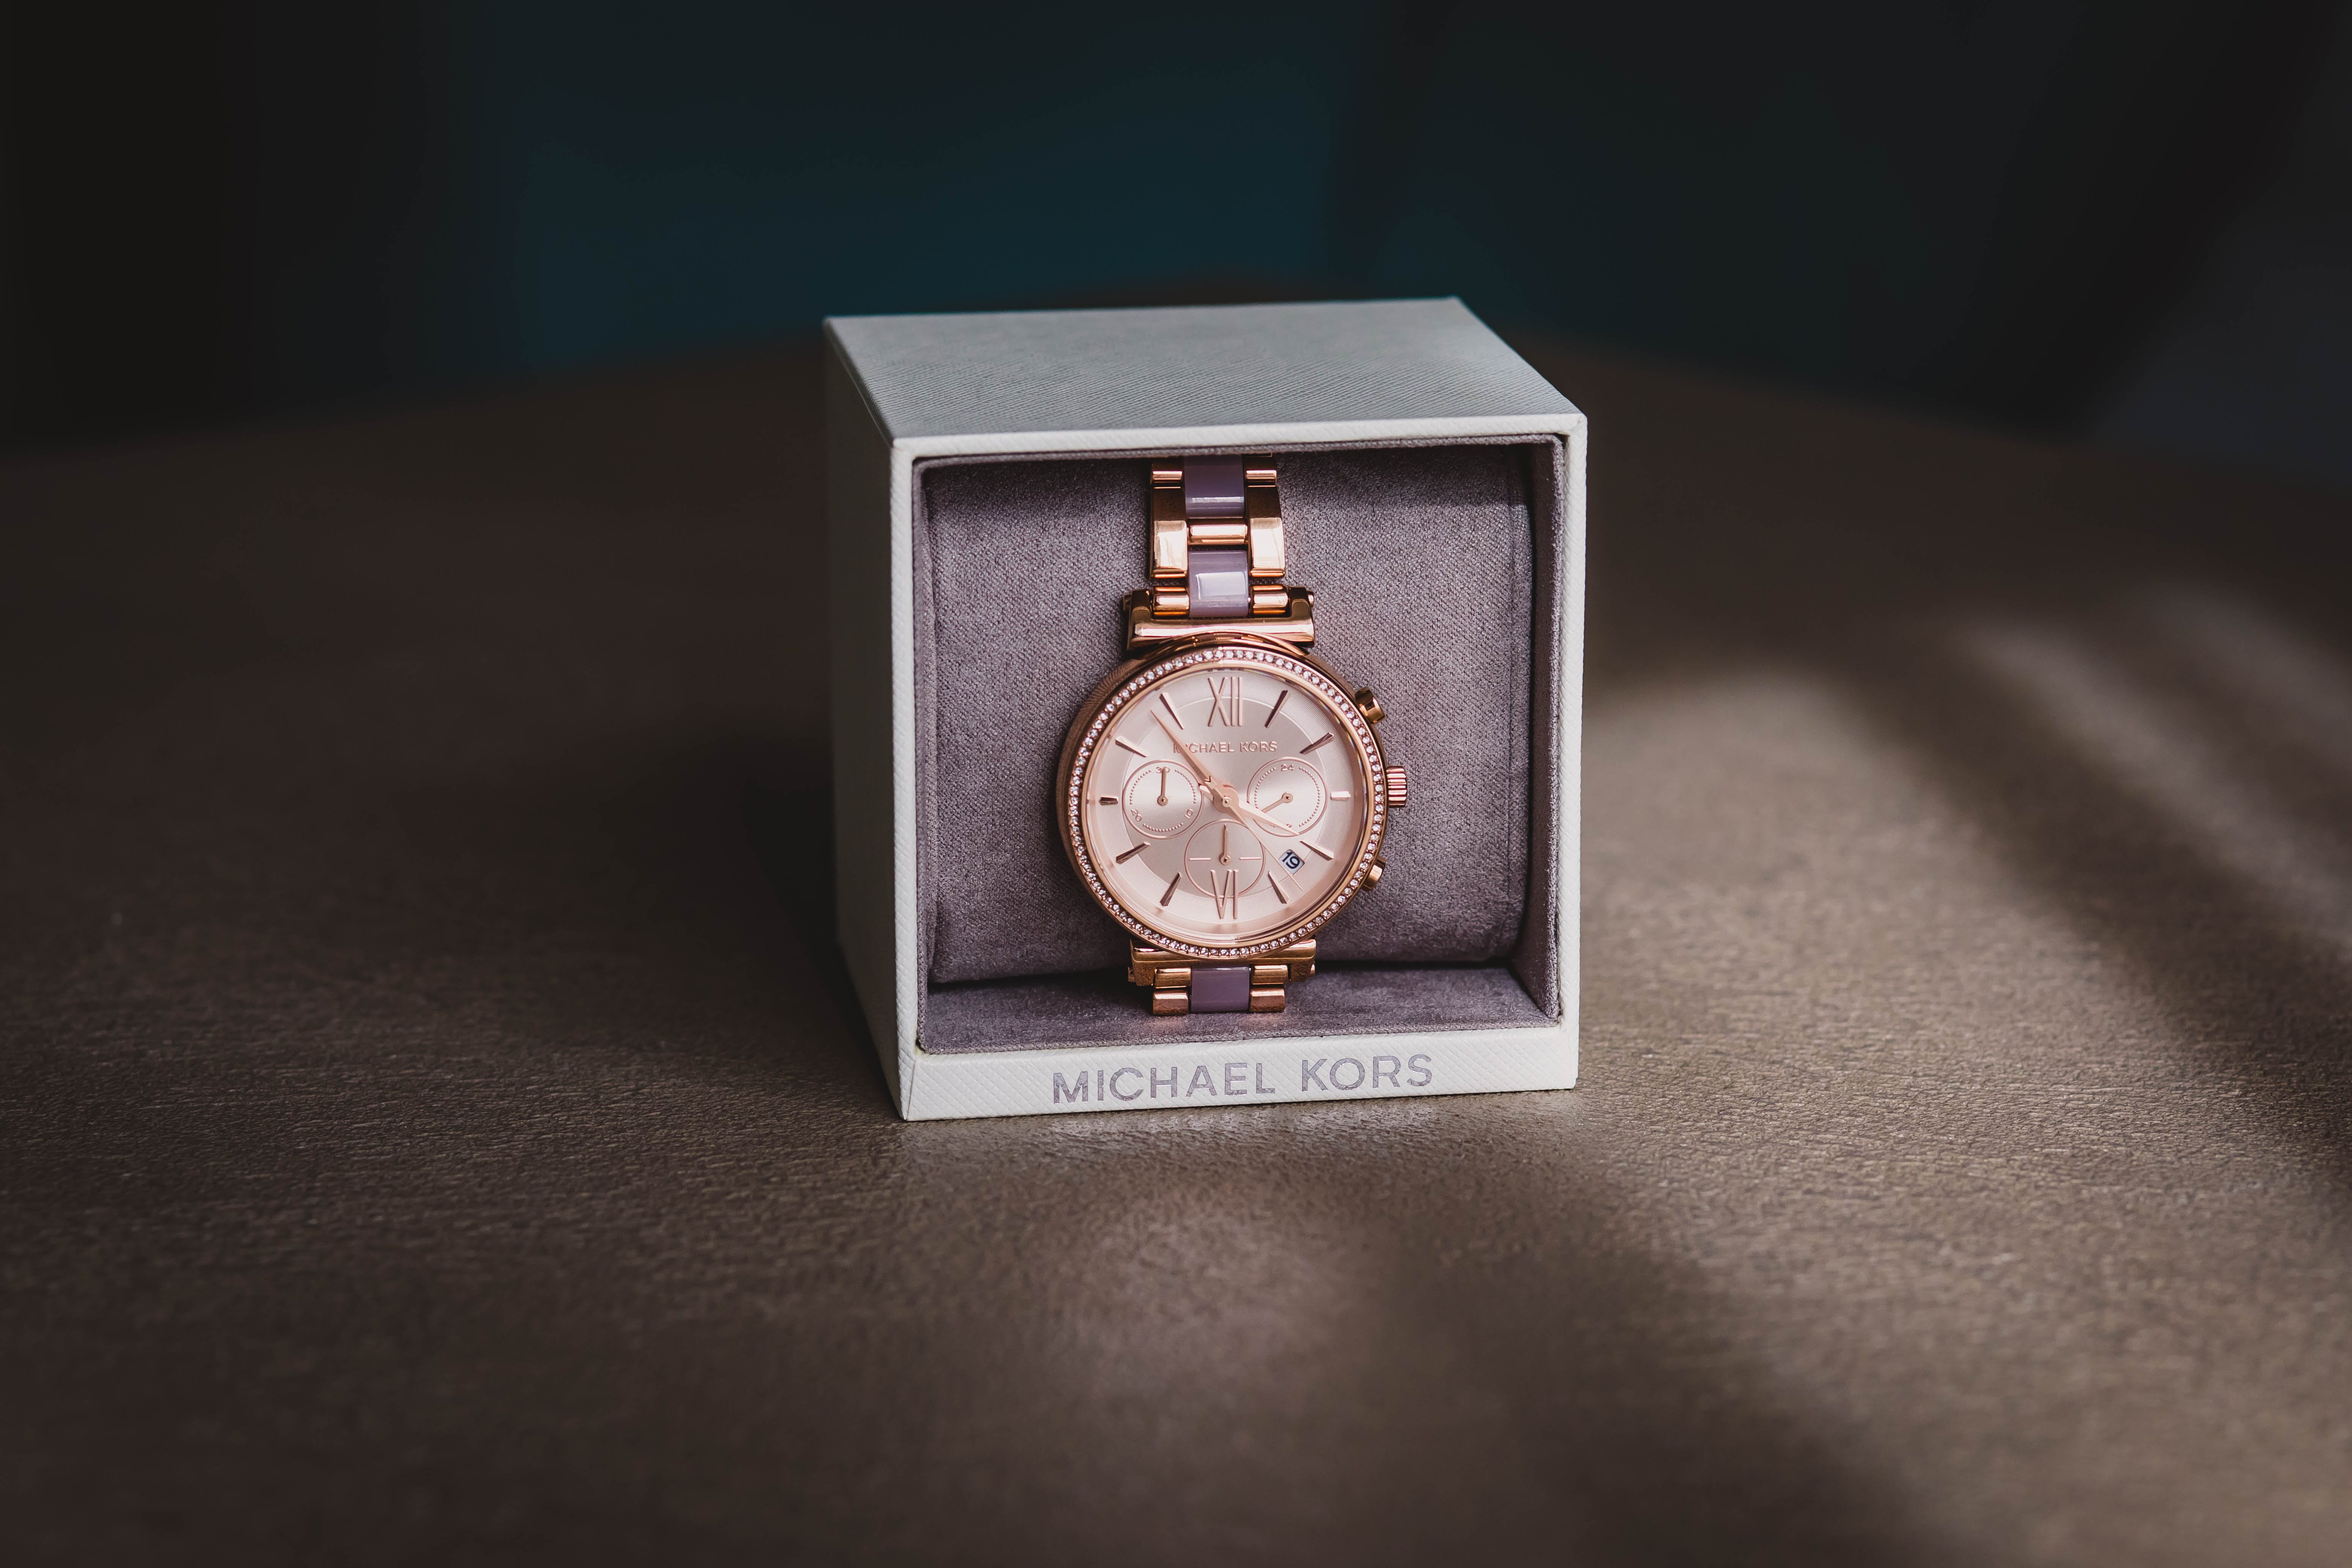 Round Gold-colored Analog Watch With Link Bracelet and Box